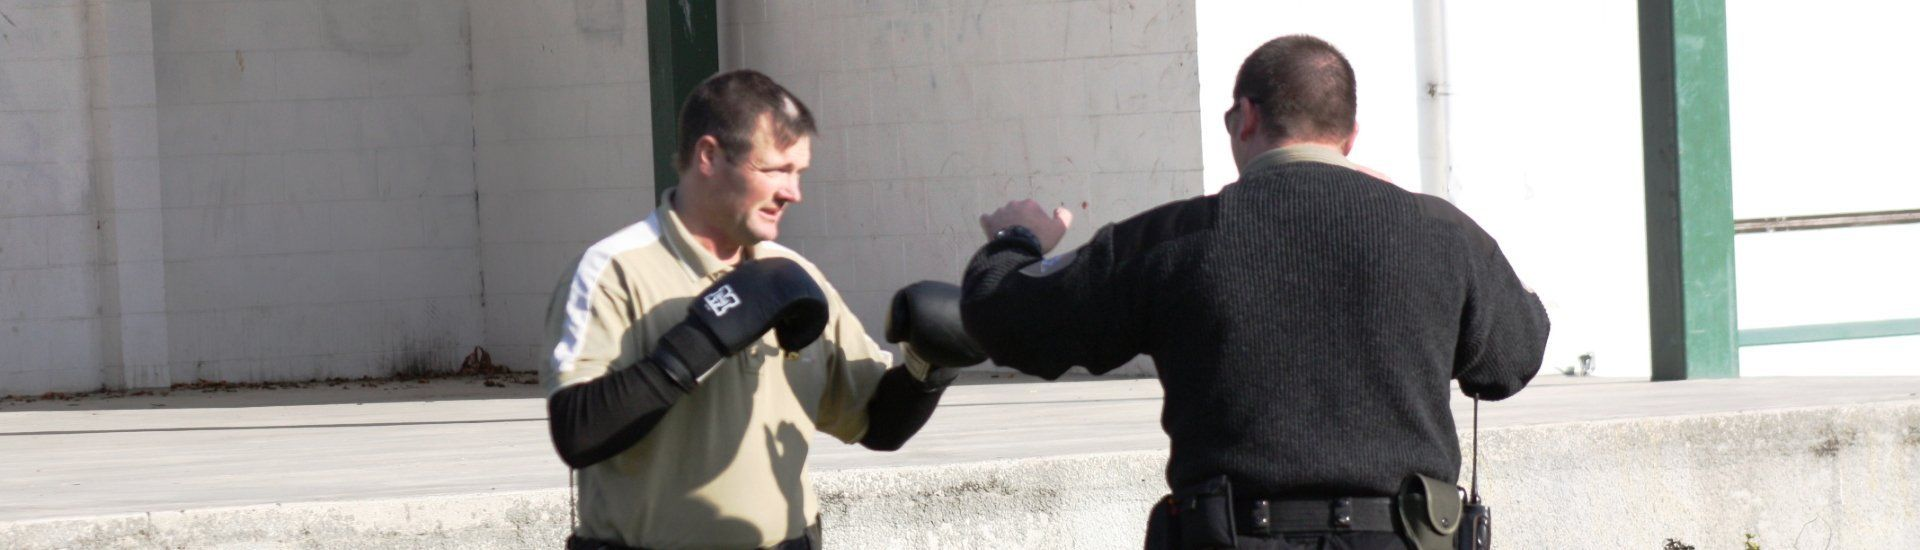 Self Defence - Talbot Security Group Canterbury